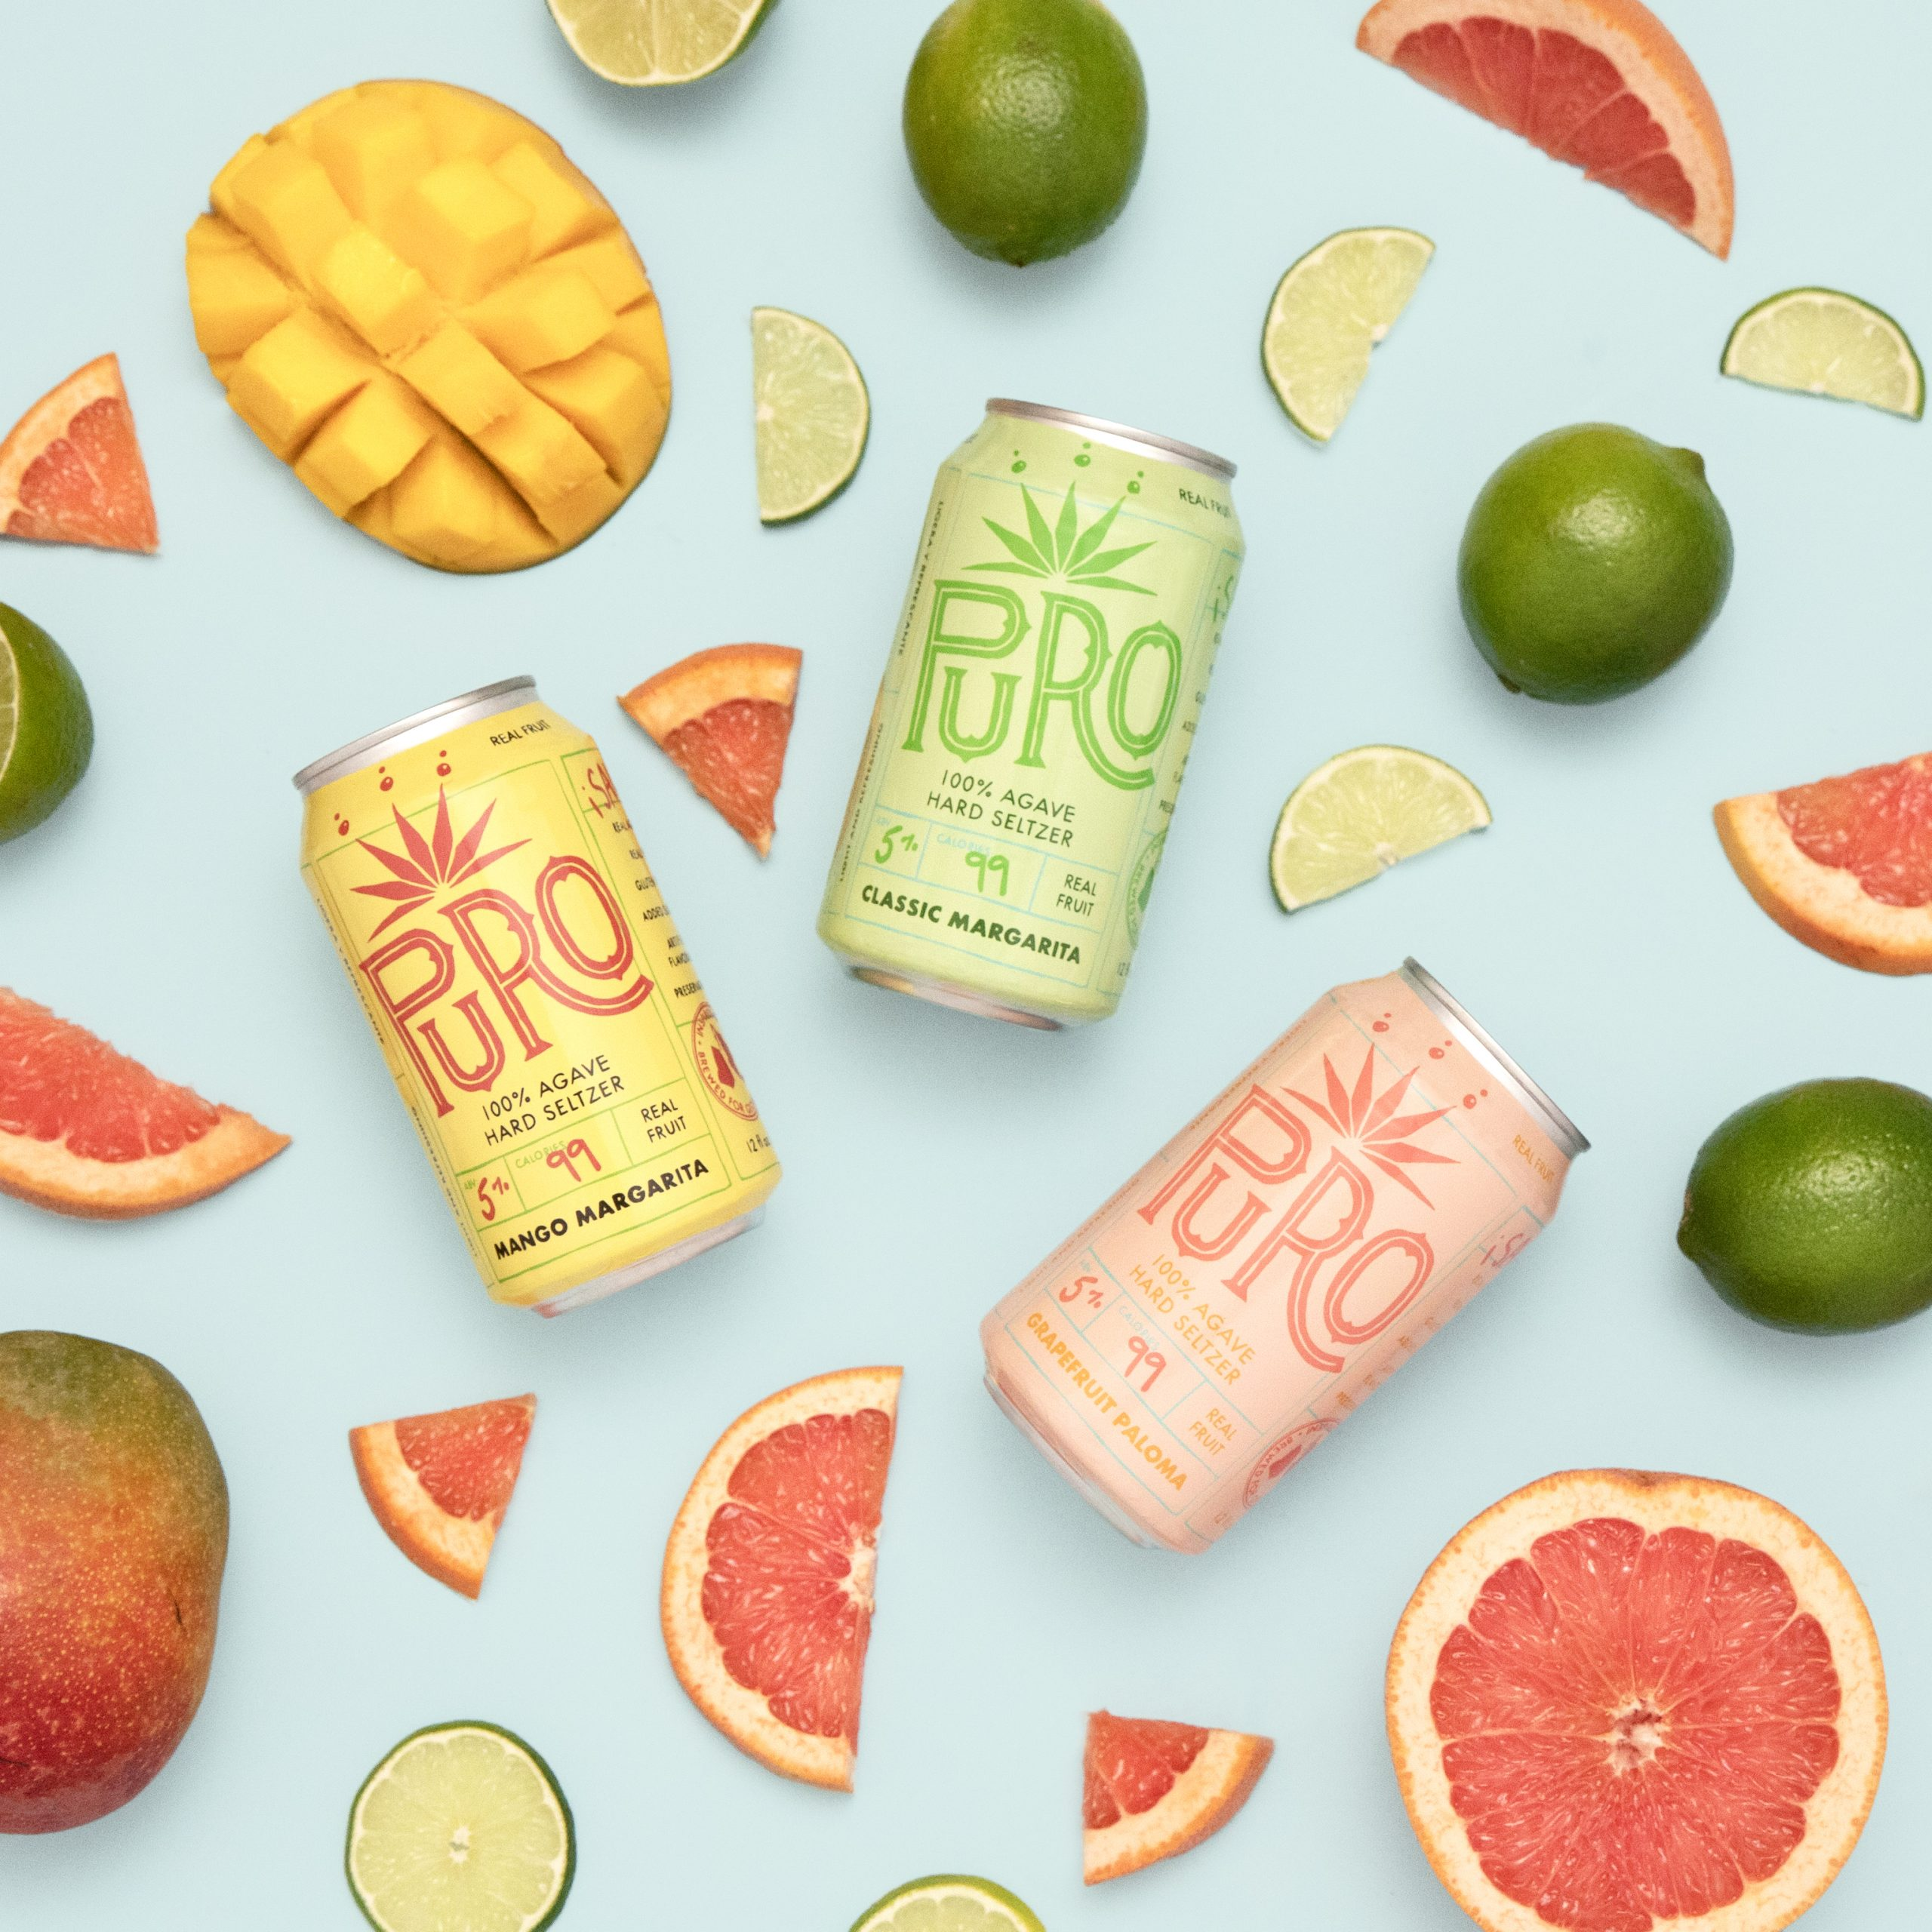 Dry County Brewing Puro Agave Seltzer